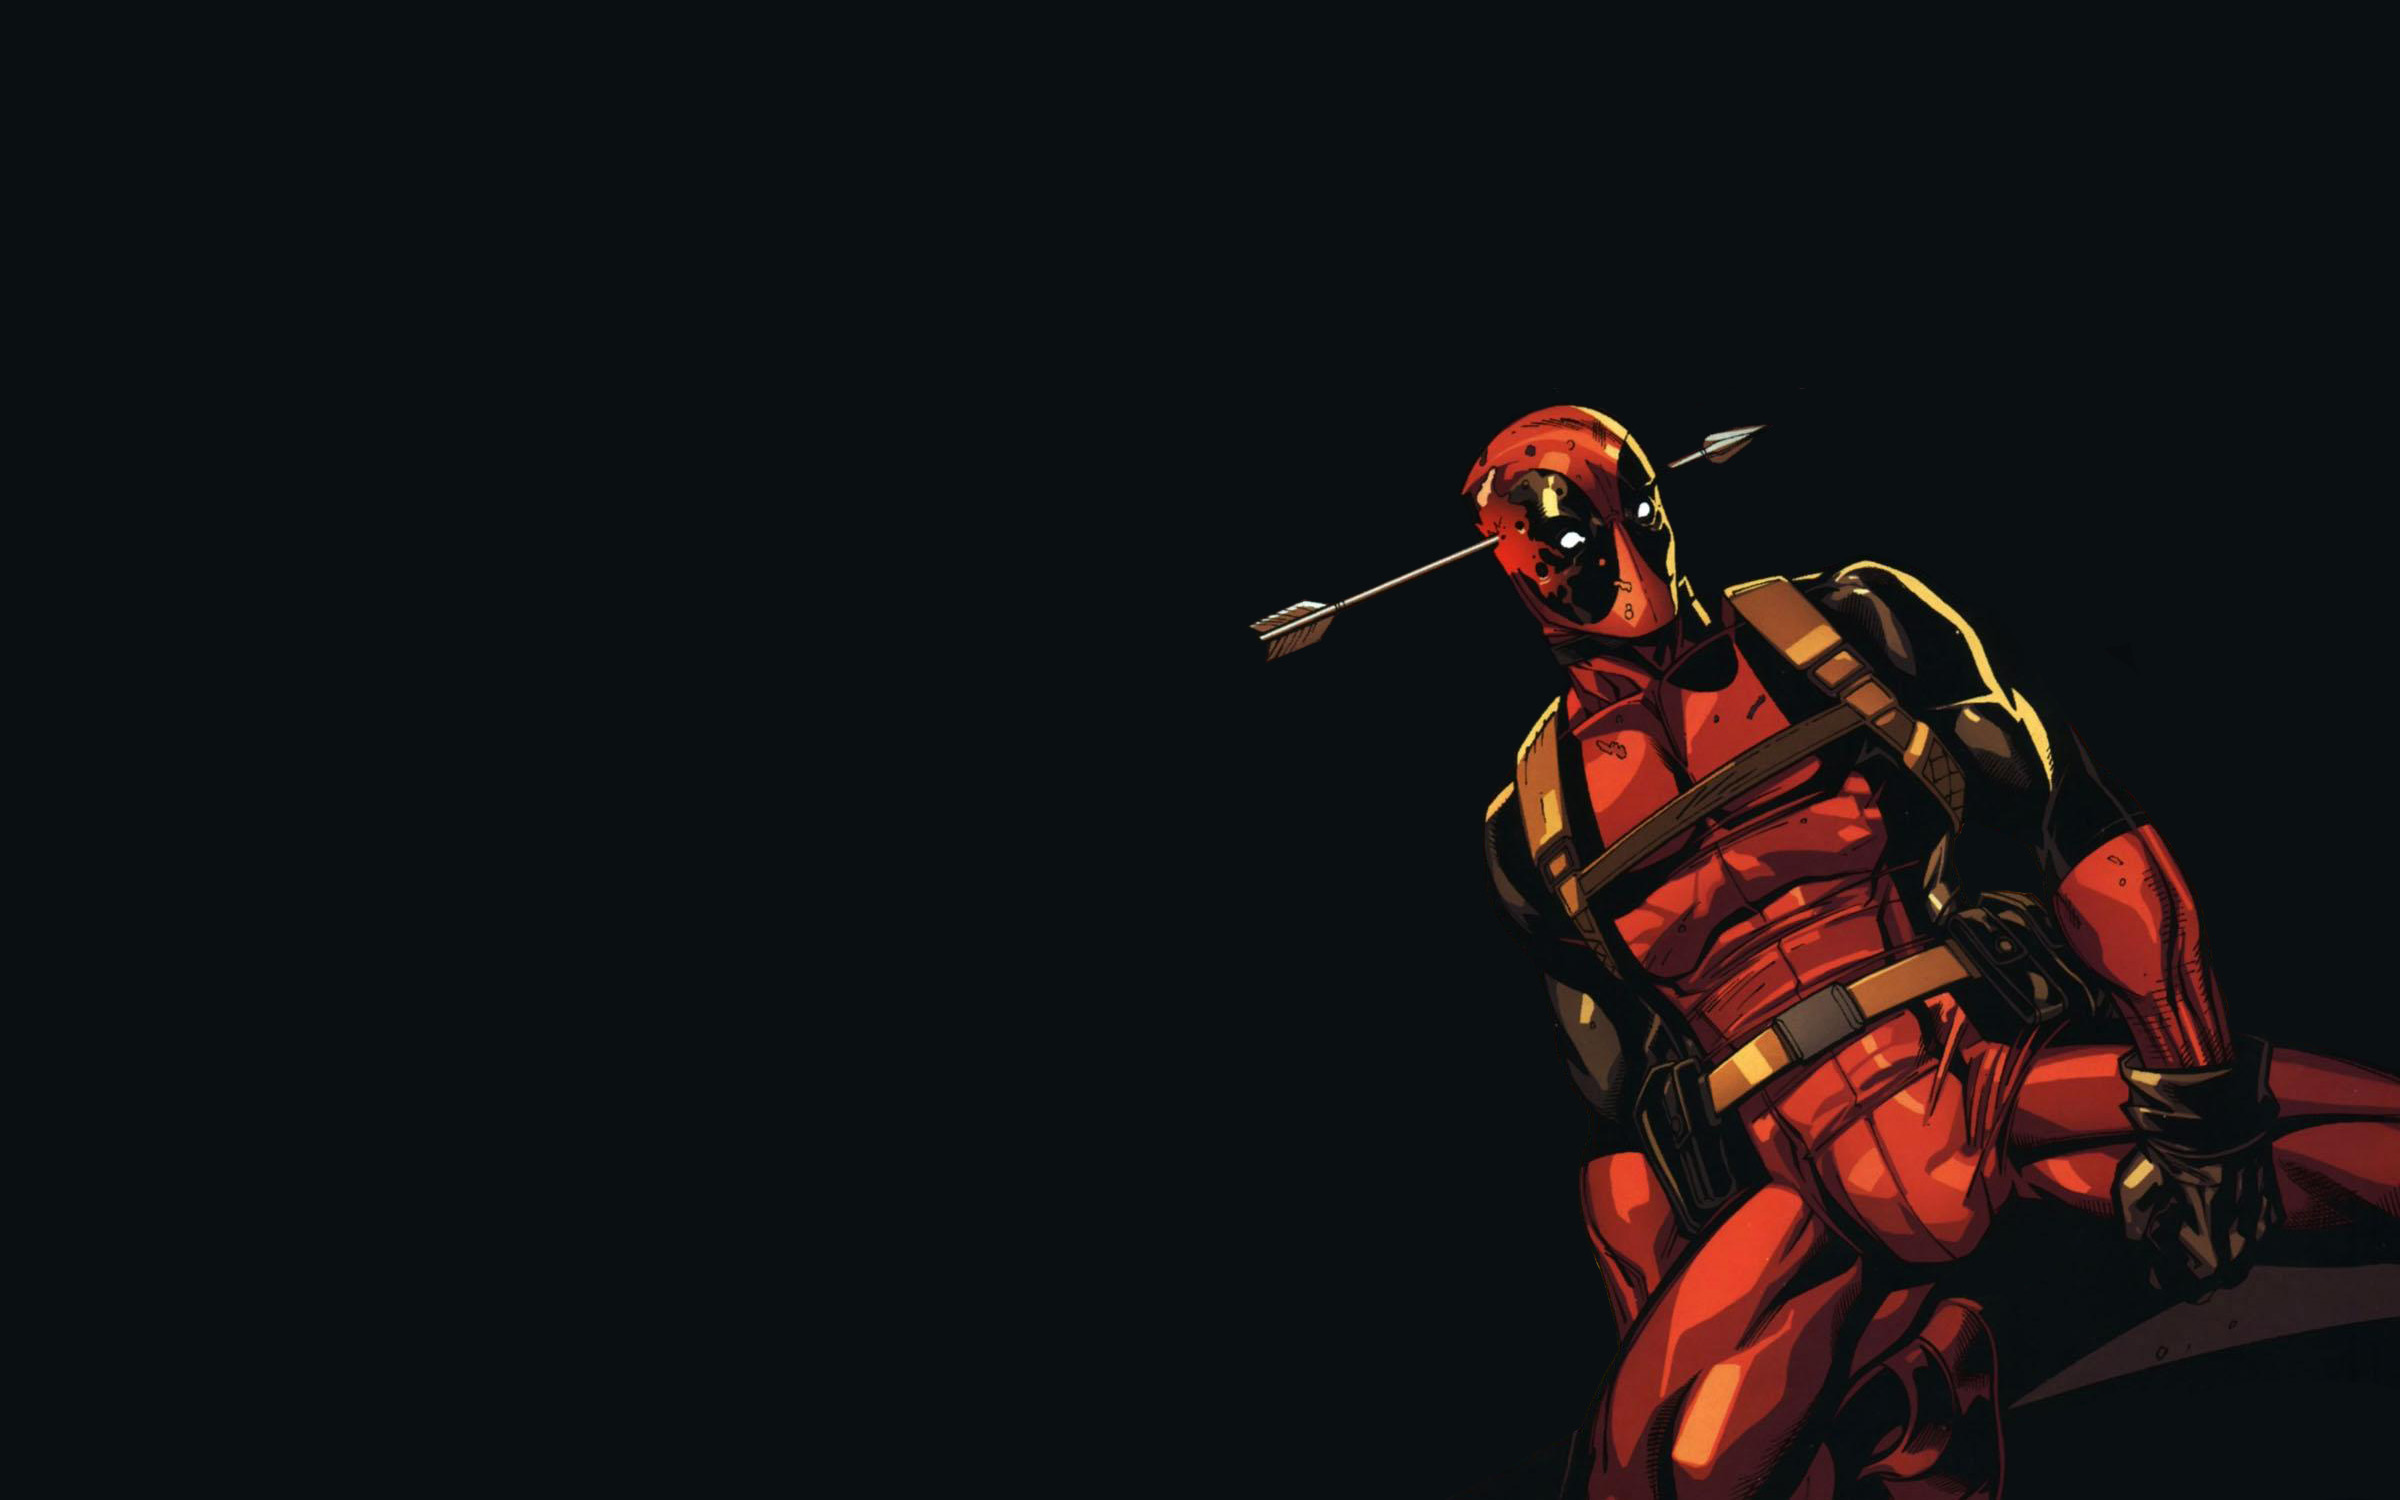 Funny deadpool wallpapers wallpapersafari for Deadpool wallpaper 1920x1080